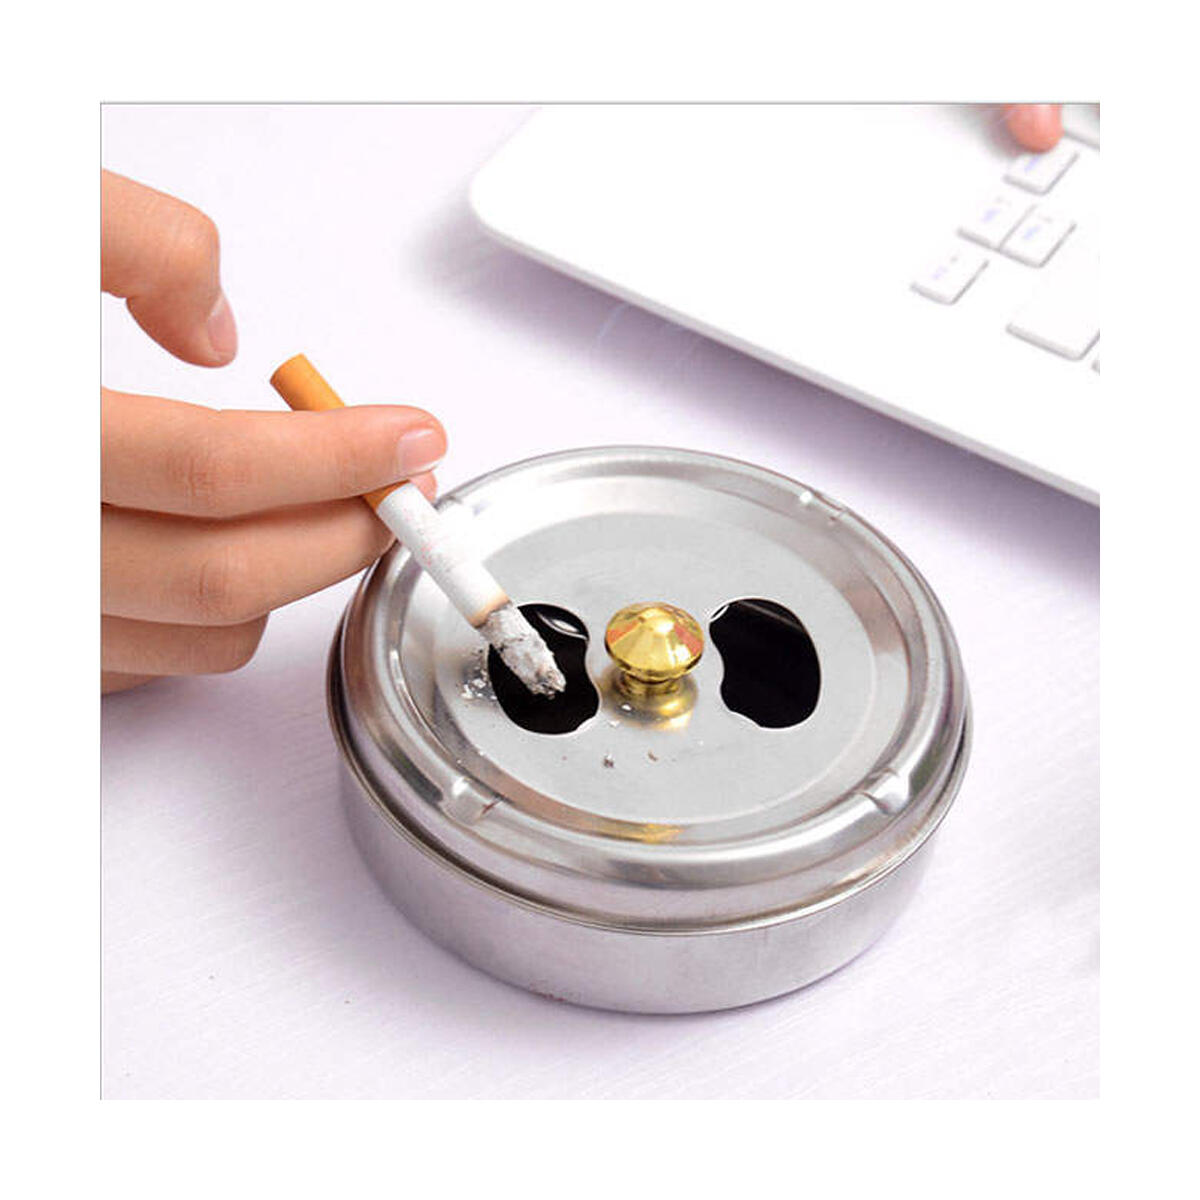 Emir&Odin Ashtray with Lid Stainless Steel Cigar Ashtrays for Cigarettes, Portable Ash Tray for Indoor or Outdoor, 4 inc Modern Tabletop Decoraiton, Cool and Windproof Home Cigar Ashtrays